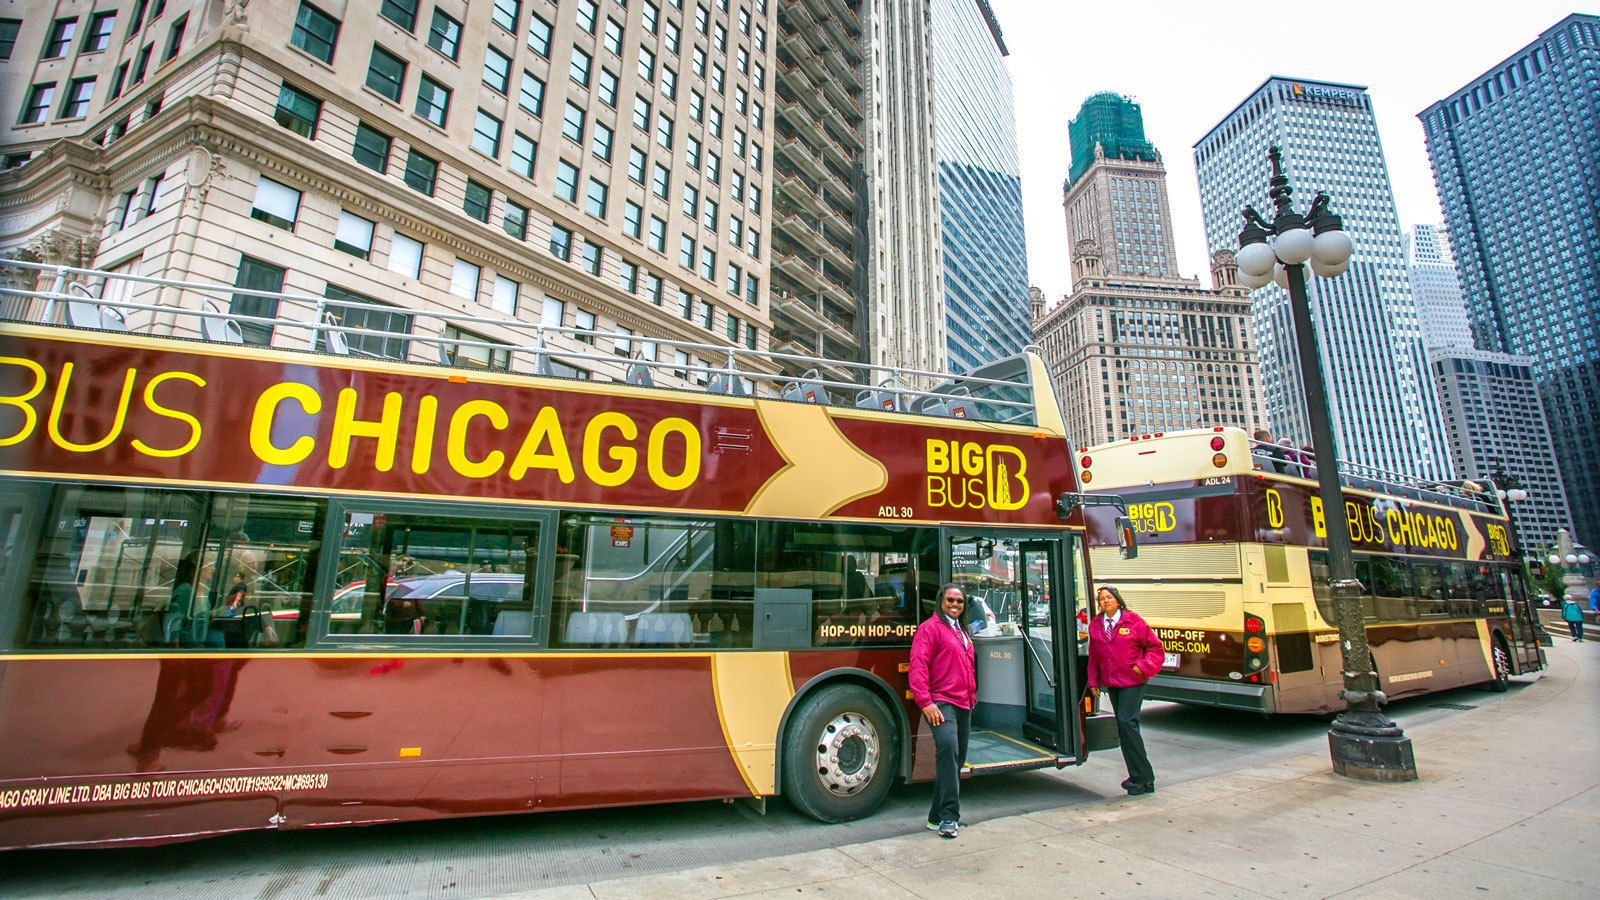 Circuit en bus à arrêts multiples à Chicago